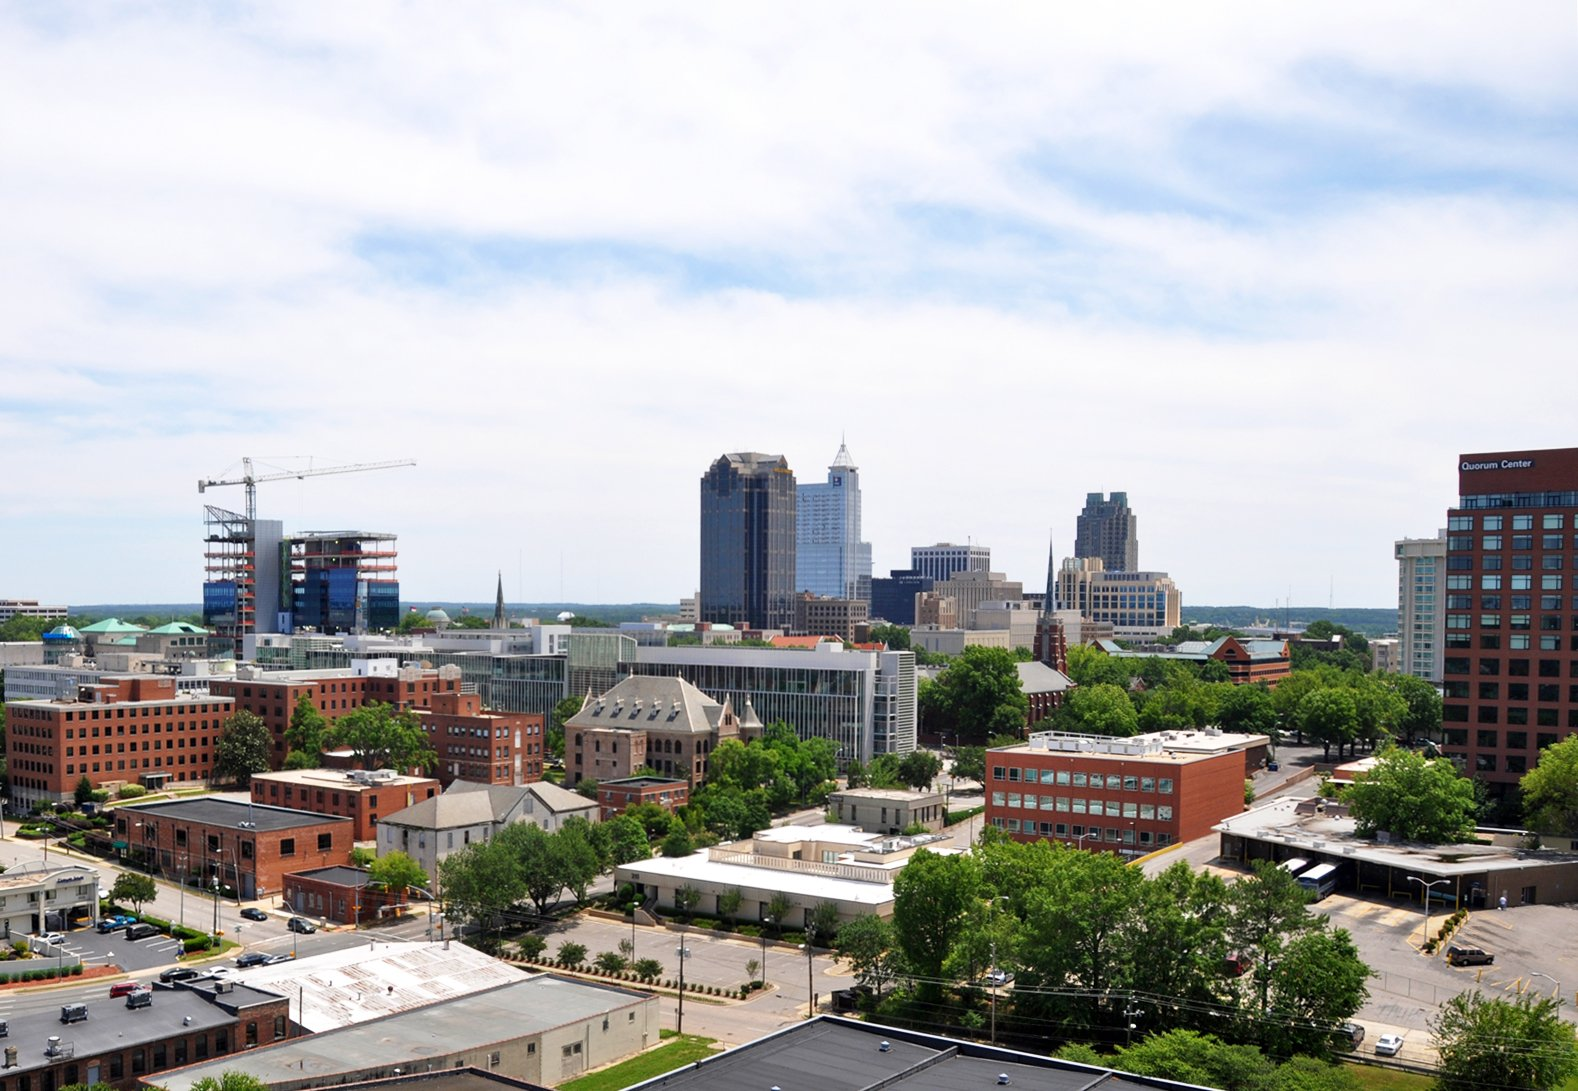 Sell your House fast in NC with Inspiring Investment Raleigh - downtown Raleigh skyline on the sell your house fast in North Carolina page